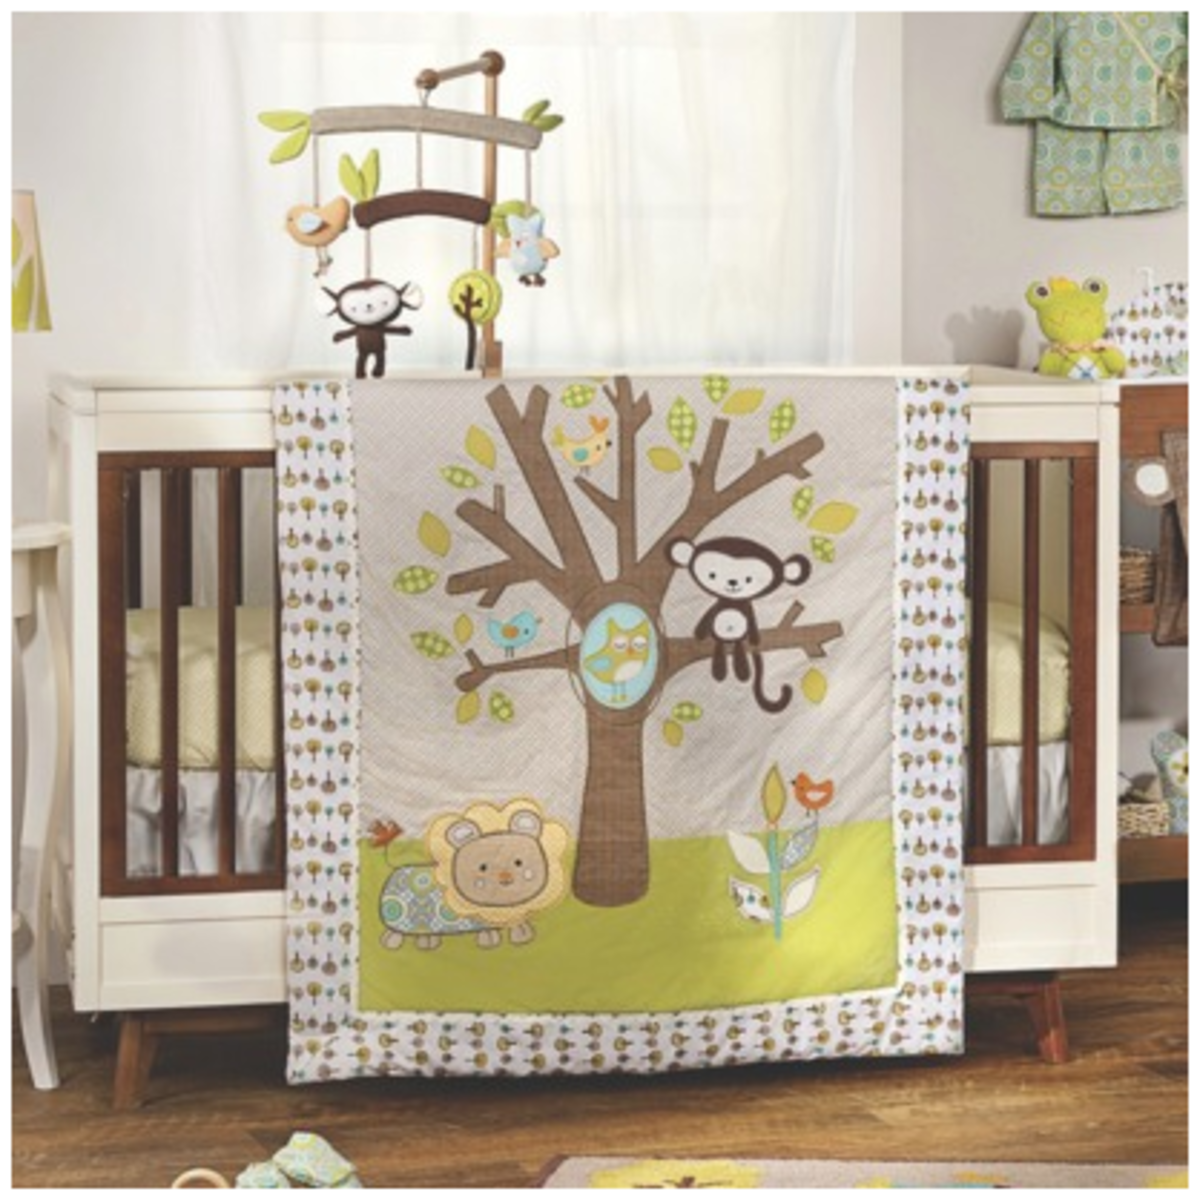 Woodland and Nature Theme Nursery Décor | hubpages